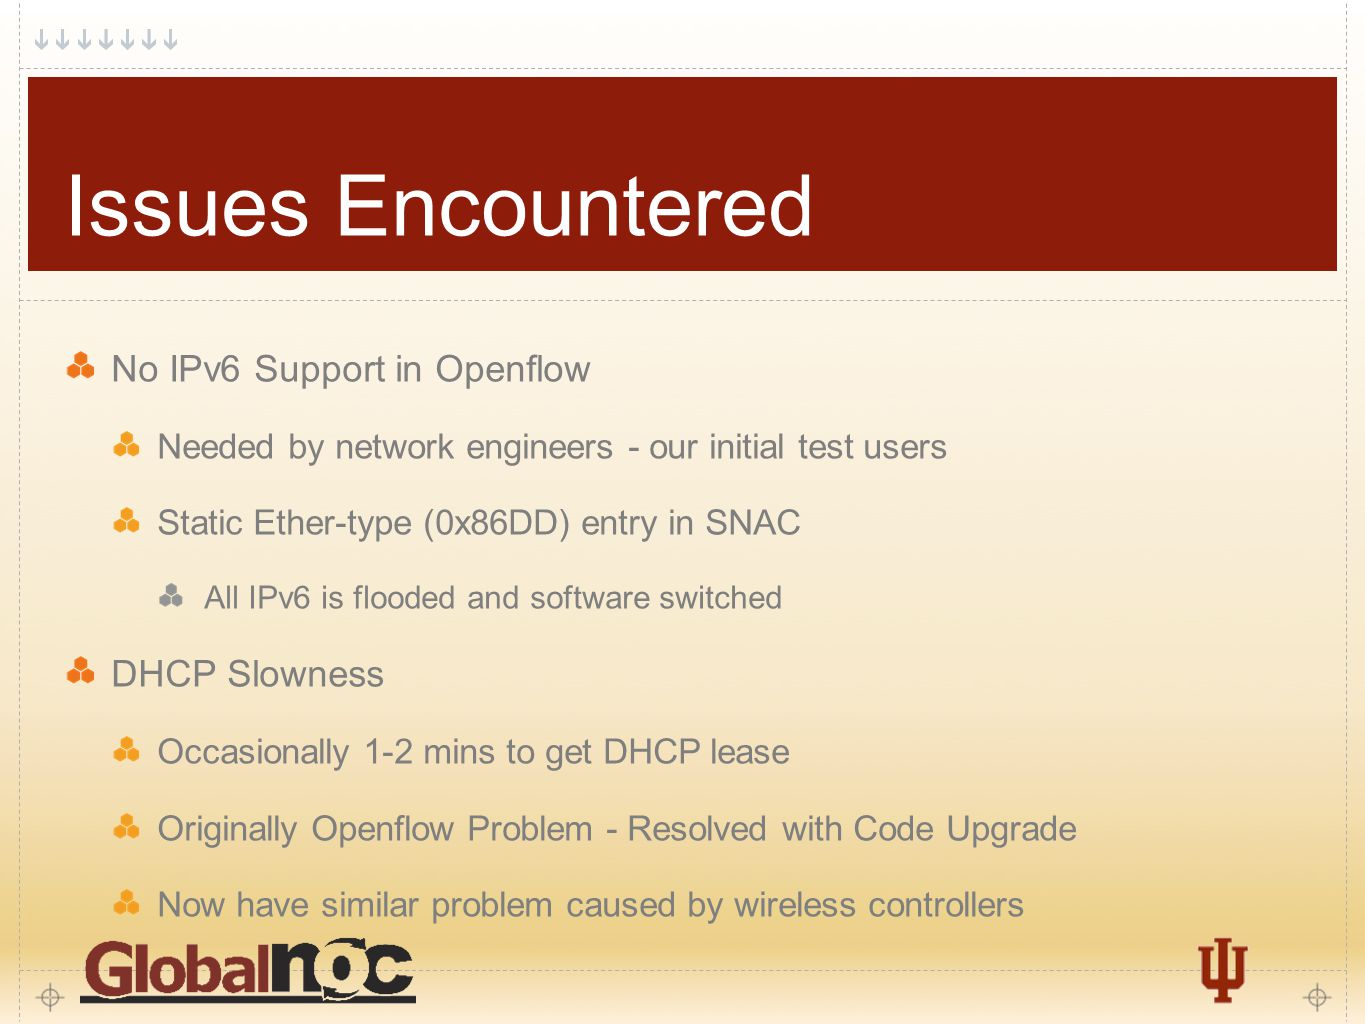 7 Issues Encountered No IPv6 Support in Openflow Needed by network engineers - our initial test users Static Ether-type (0x86DD) entry in SNAC All IPv6 is flooded and software switched DHCP Slowness Occasionally 1-2 mins to get DHCP lease Originally Openflow Problem - Resolved with Code Upgrade Now have similar problem caused by wireless controllers